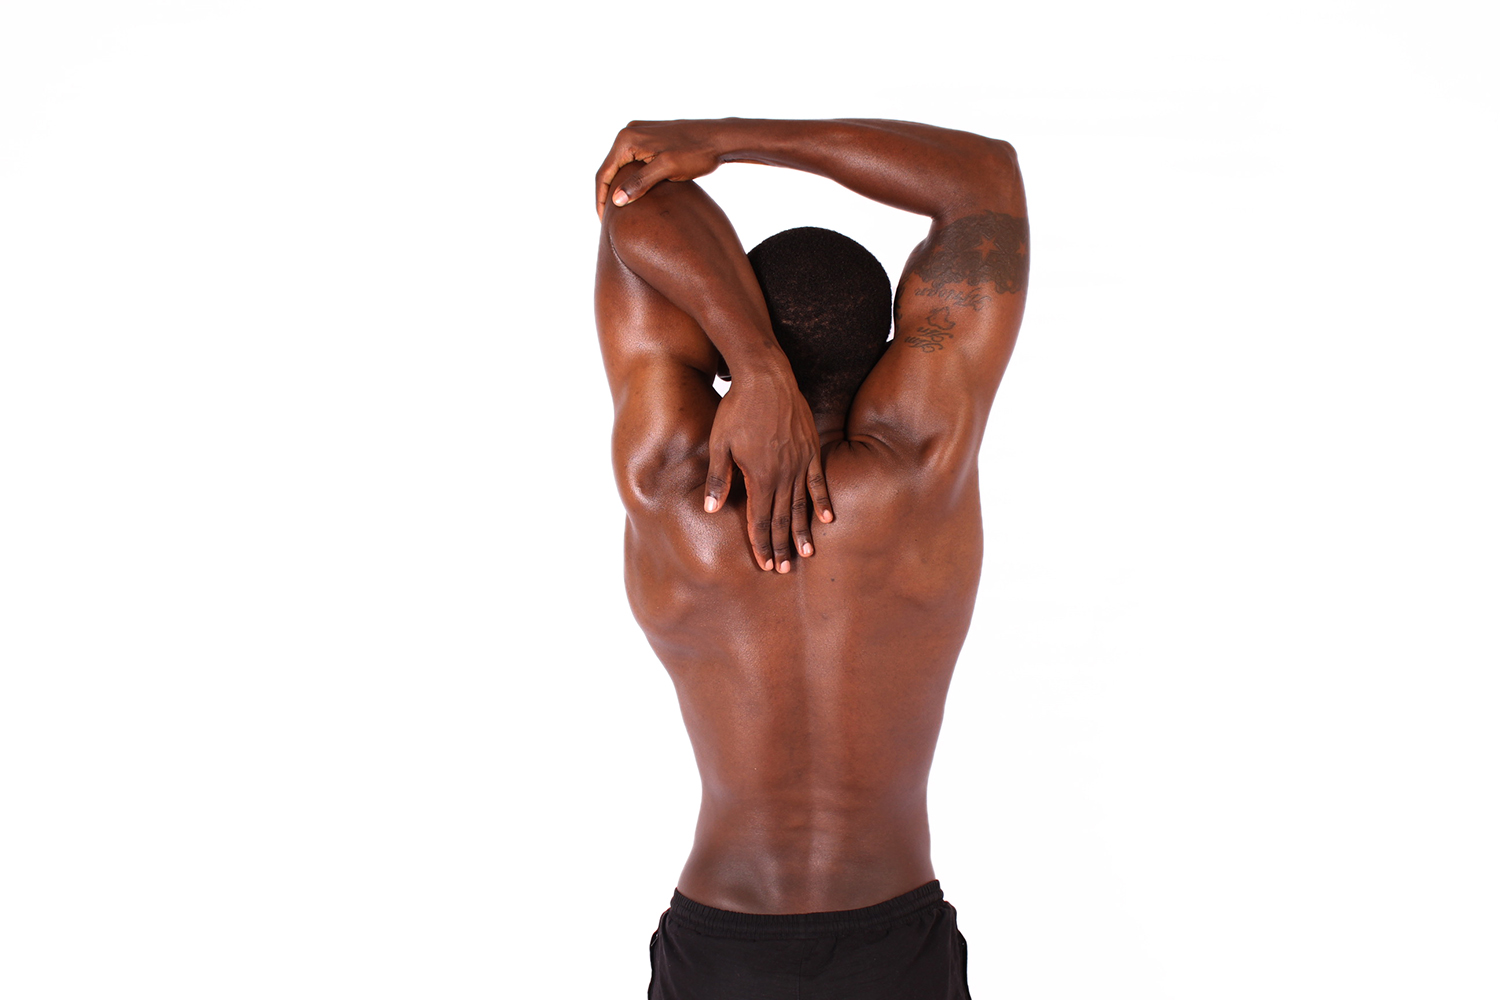 Fitness man stretching shoulder muscles